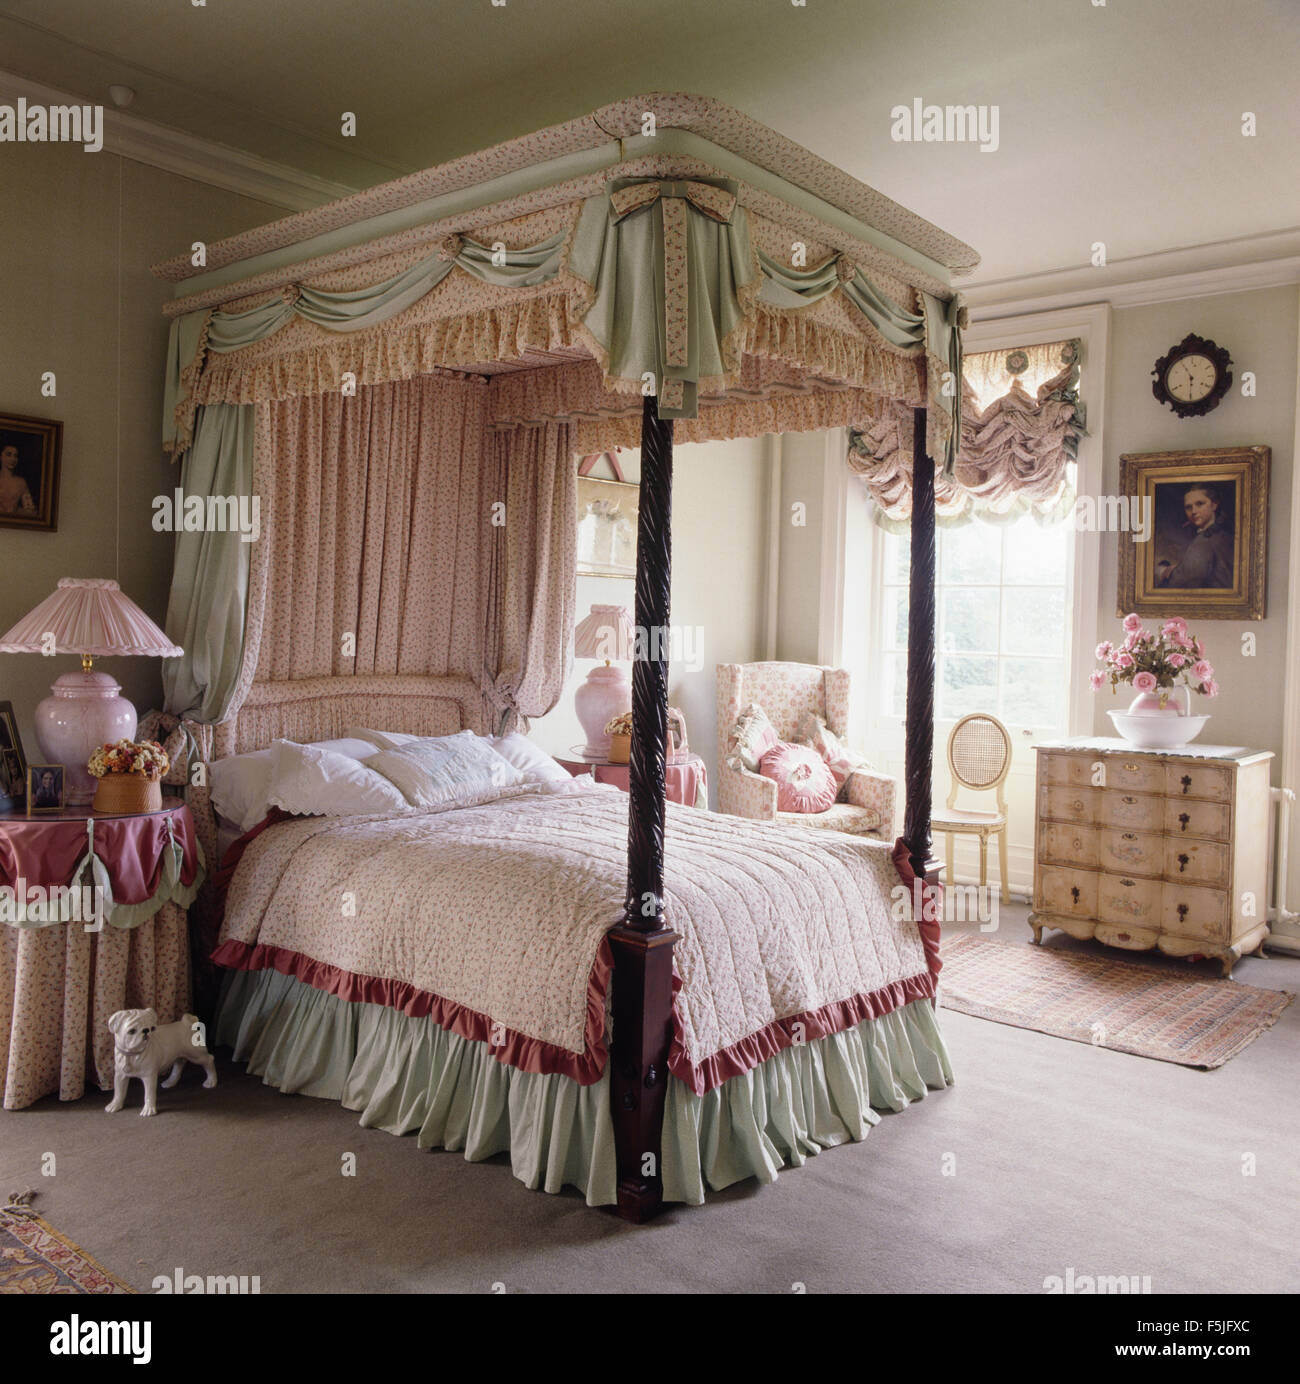 Pale Green And Pink Drapes On A Four Poster Bed With Pale Green Valance In  An